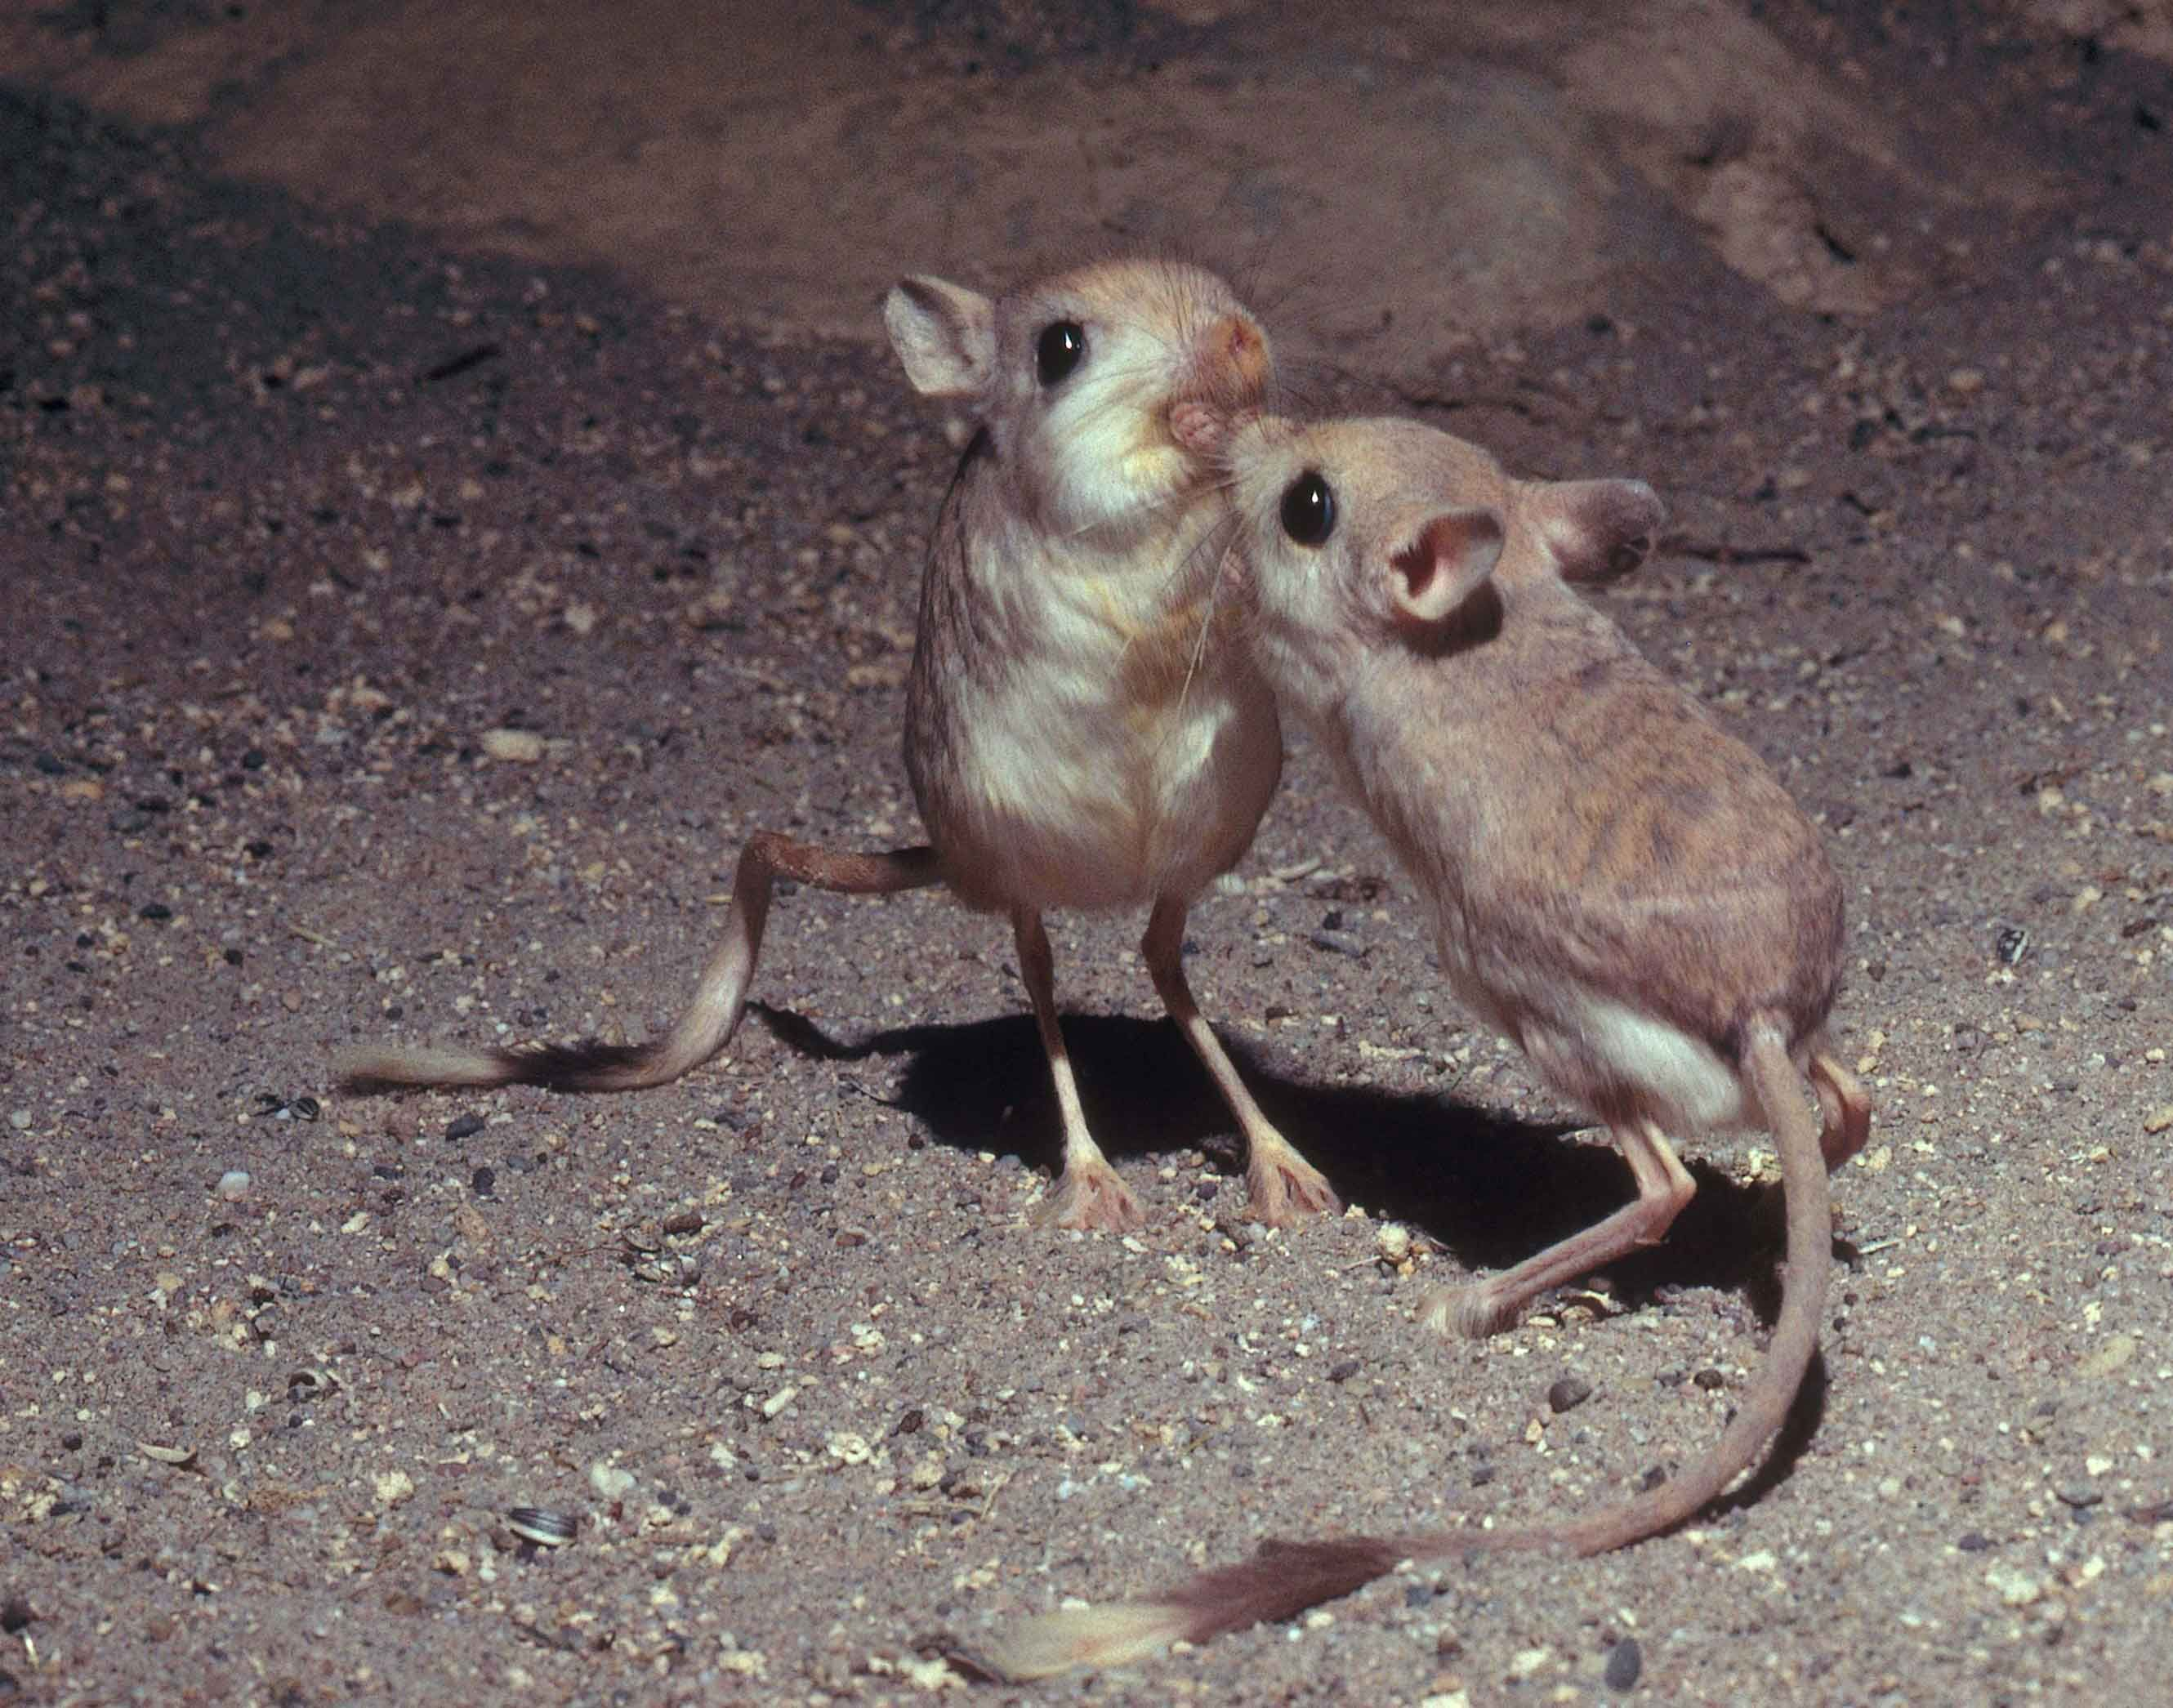 desert jerboas, native to North Africa, are fighting over